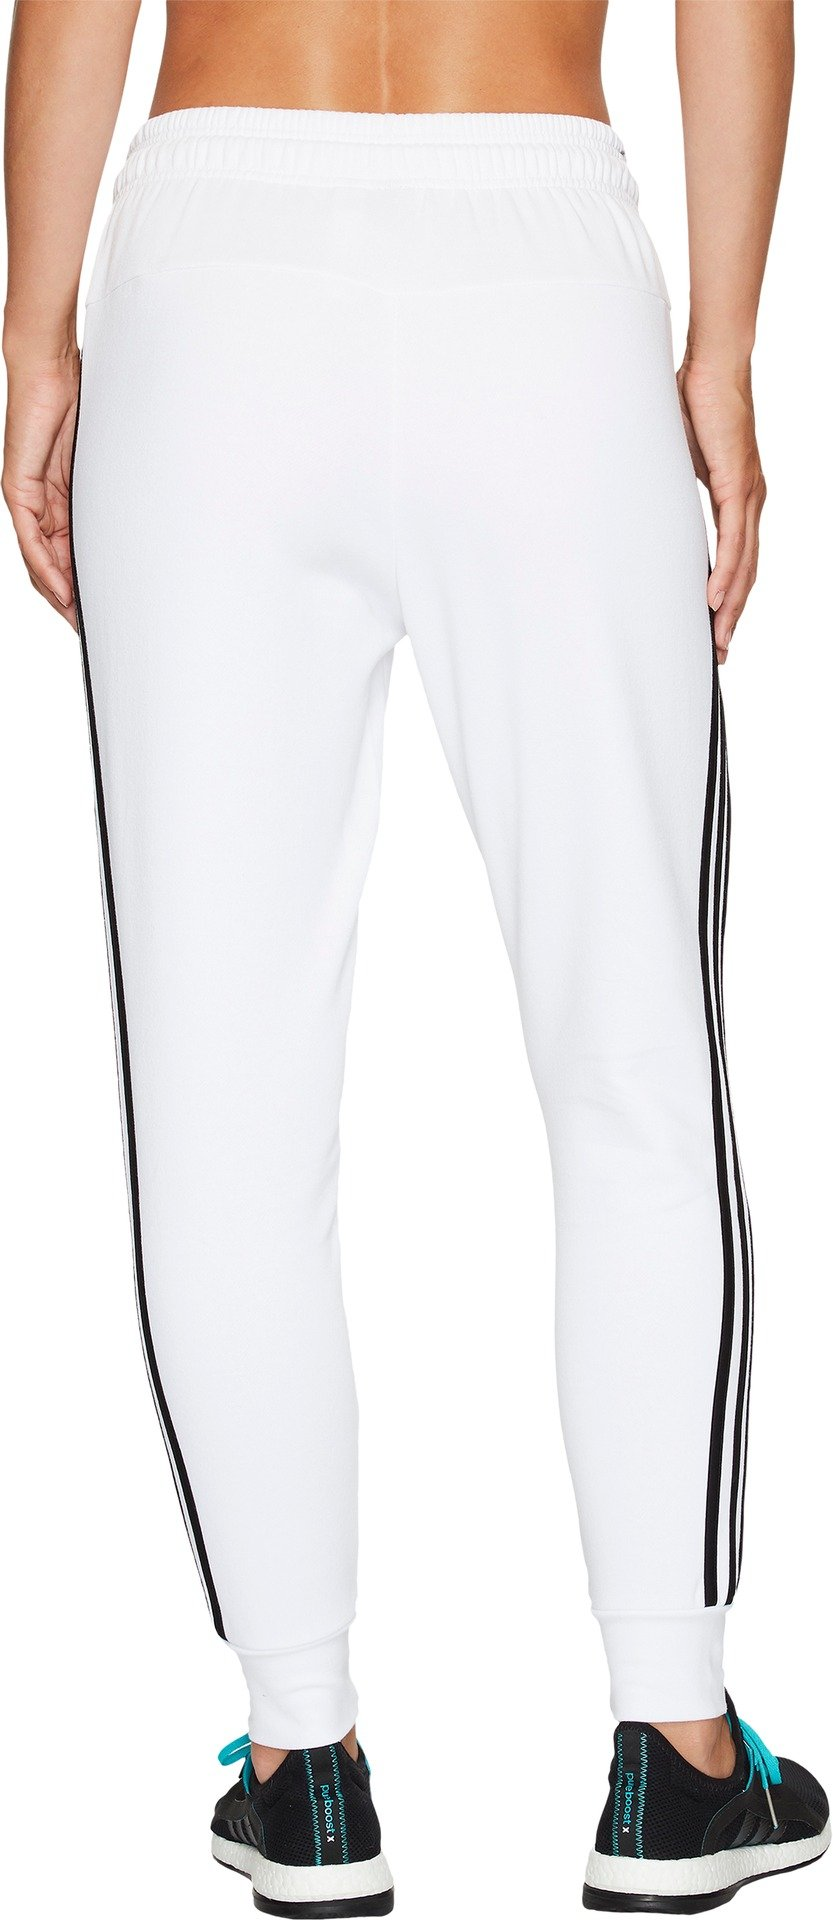 adidas Women's Athletics Essential Cotton Fleece 3-Stripe Jogger Pants, White/Black, Small by adidas